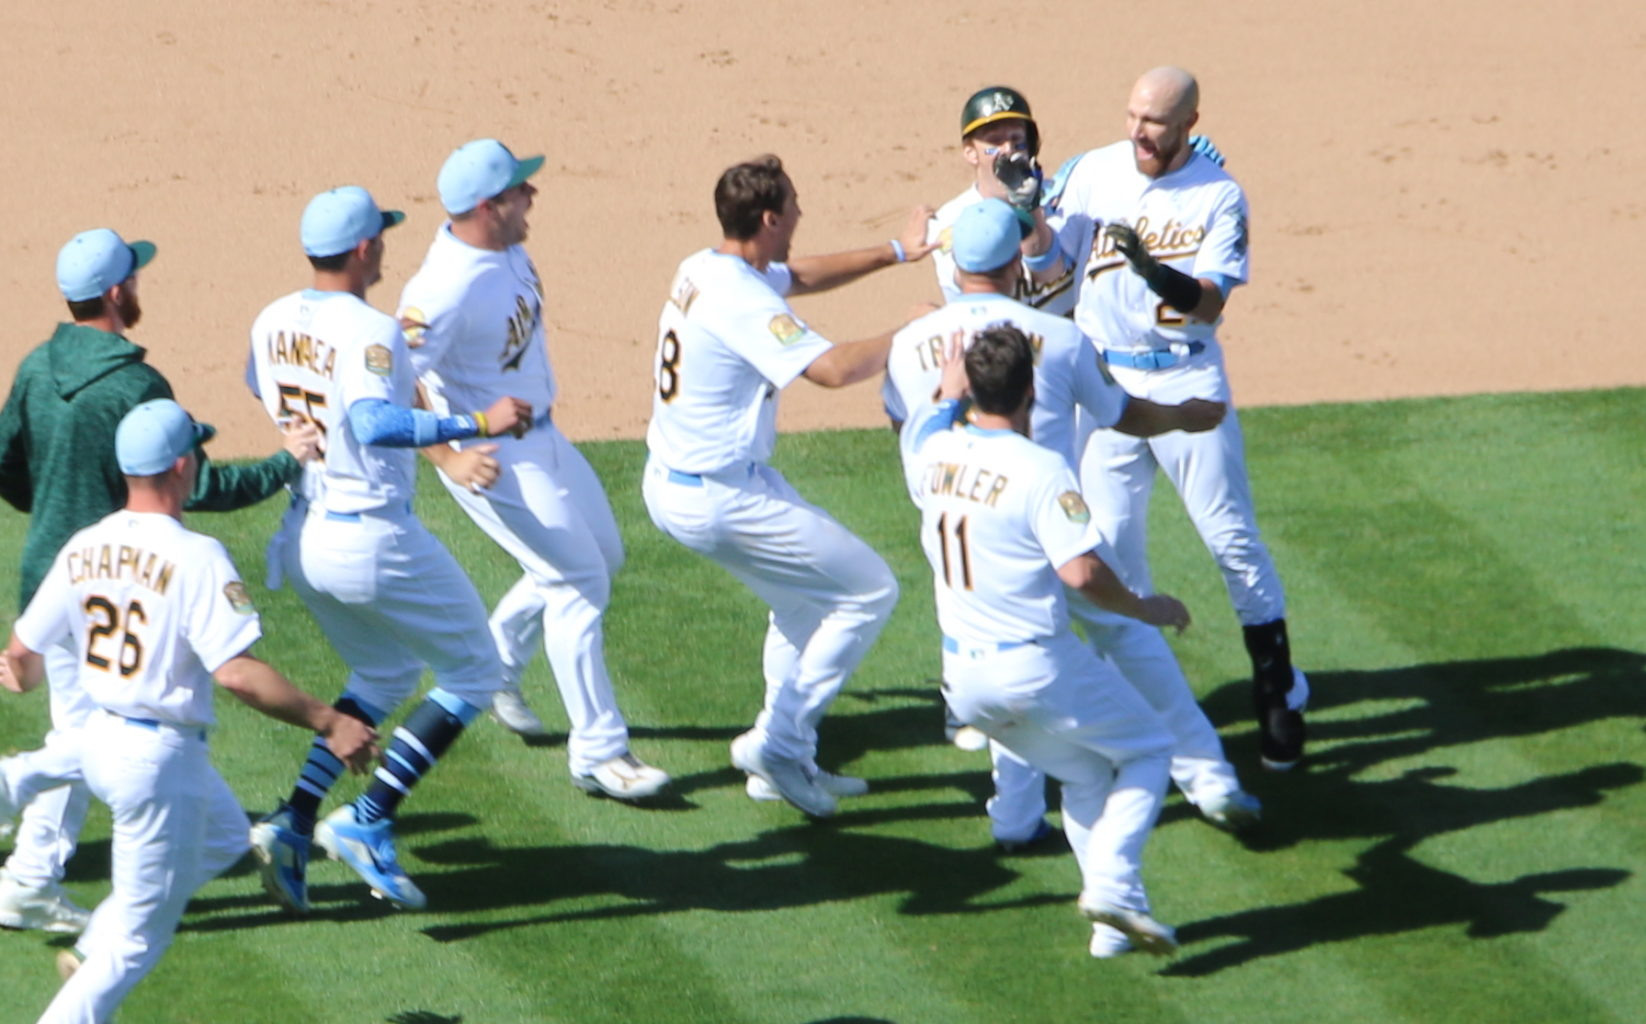 Jonathan Lucroy (right) celebrates with his teammates after his sixth career walk-off hit. (Ryan Gorcey / S.F. Examiner)